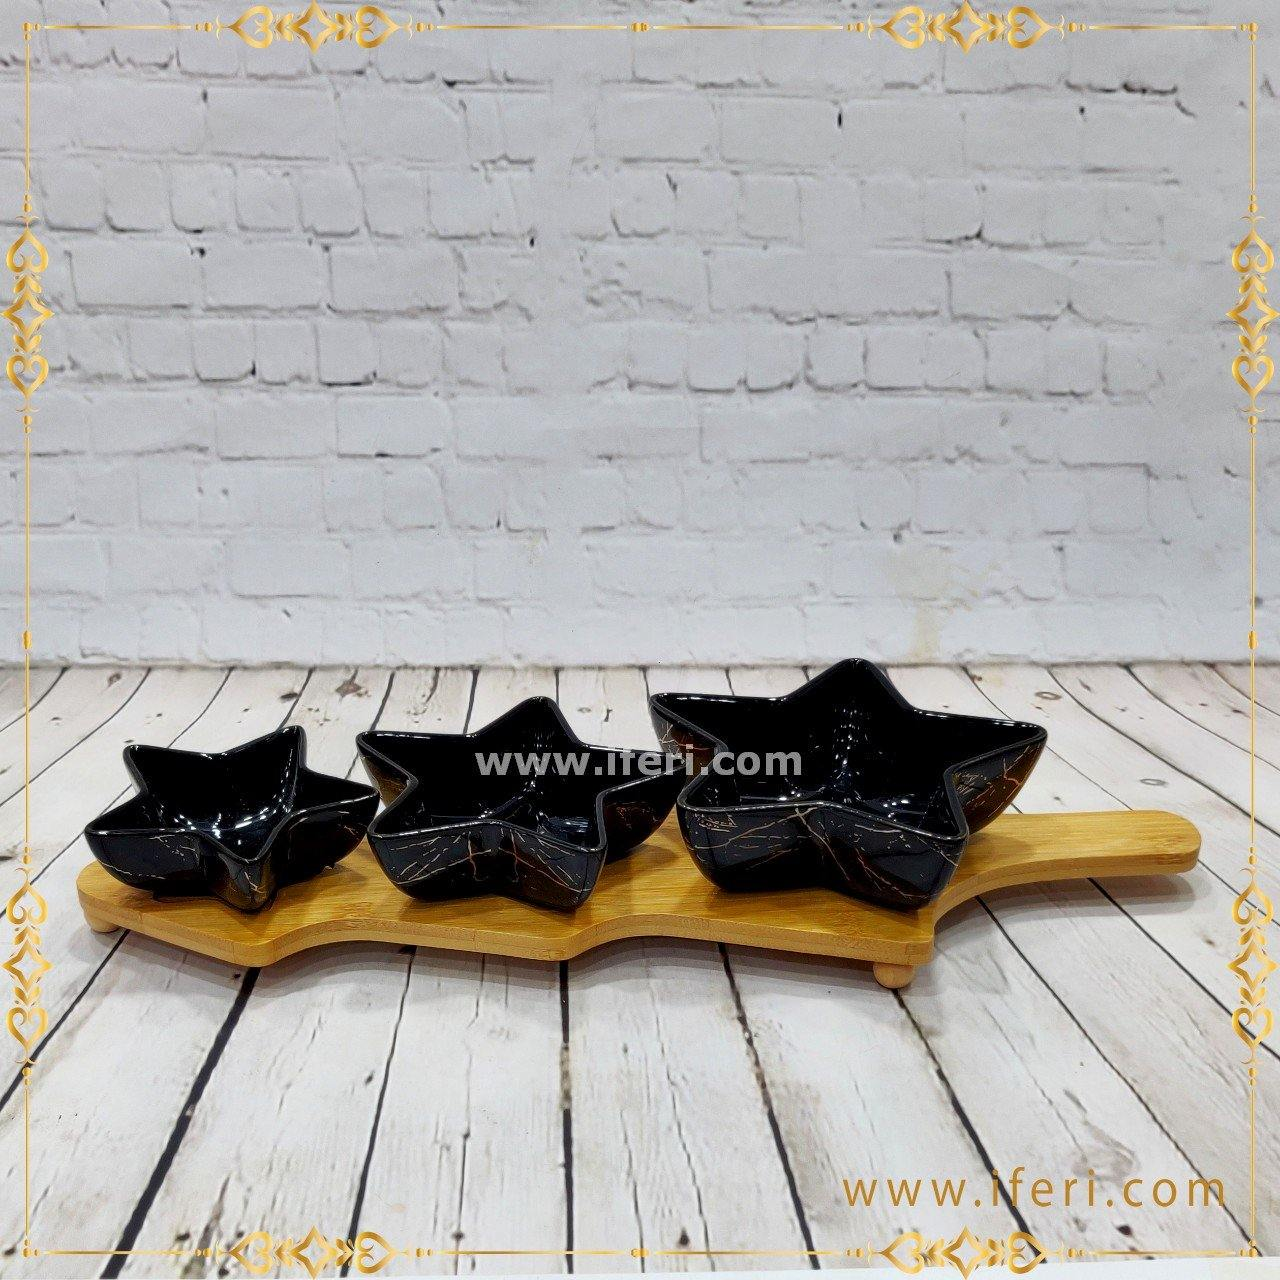 3 Pcs Ceramic Bowl Set With Wooden Tray RY7049